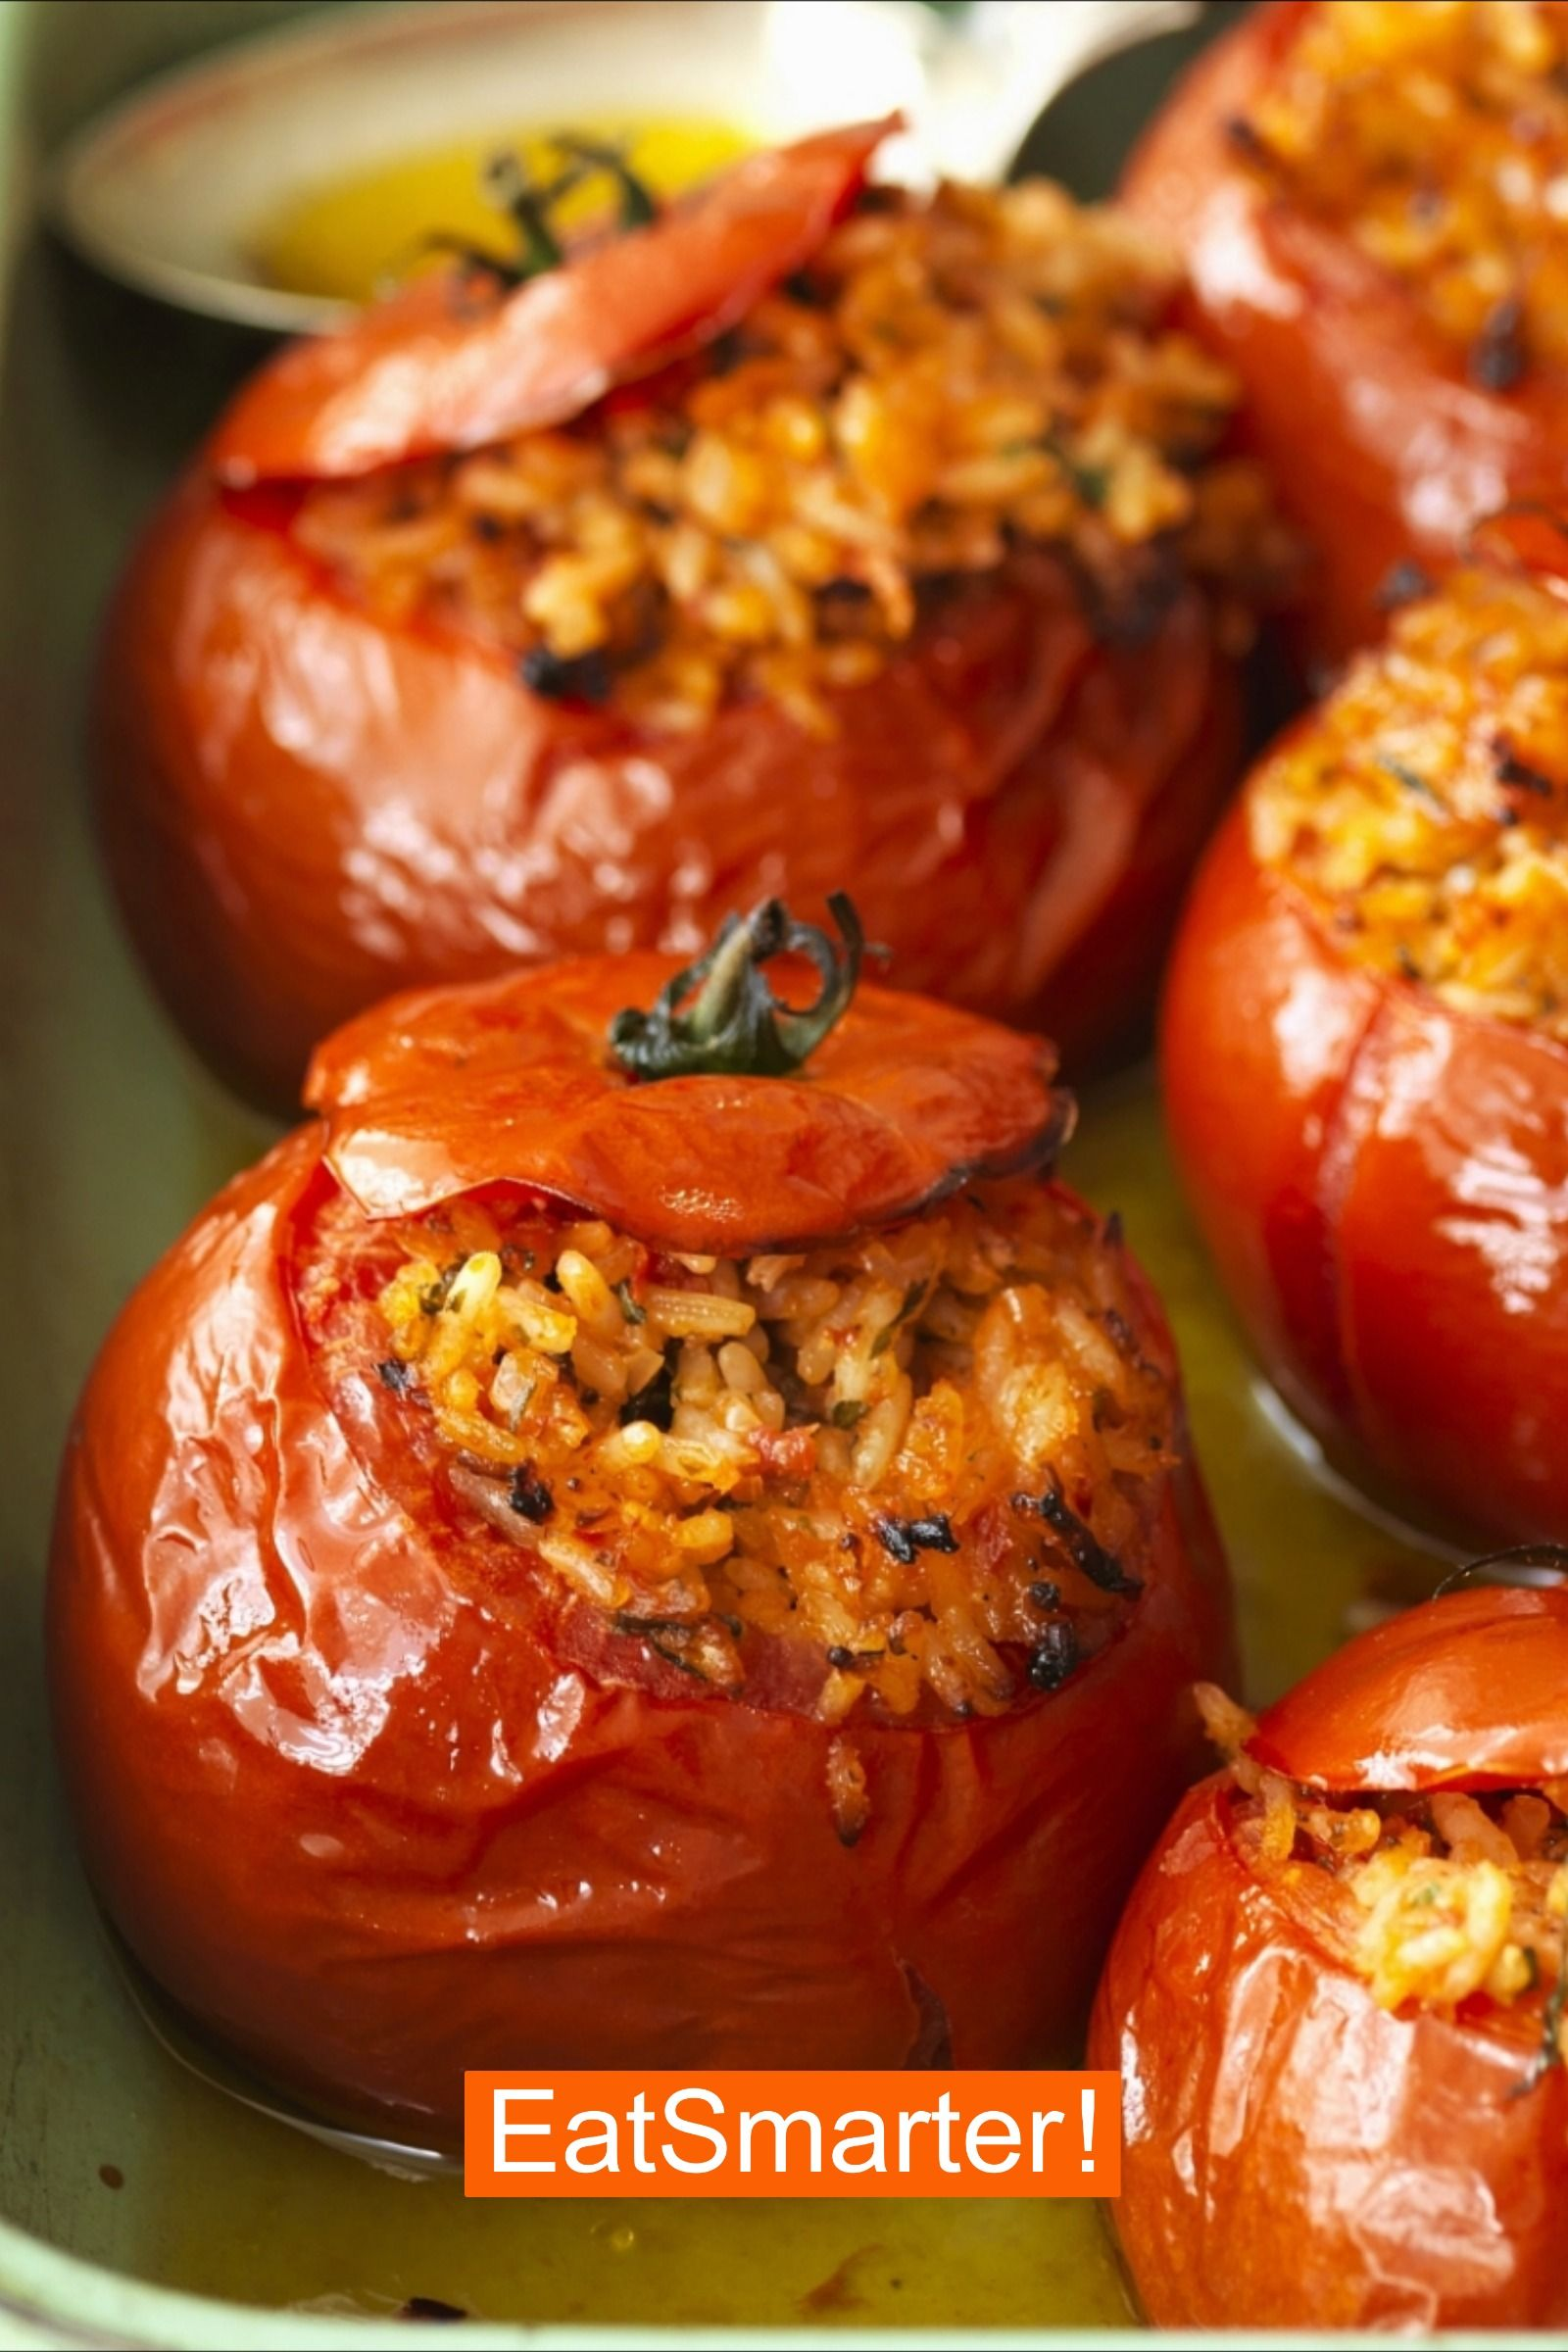 Photo of Ovened vegetables: Stuffed tomatoes from the oven EAT SMARTER